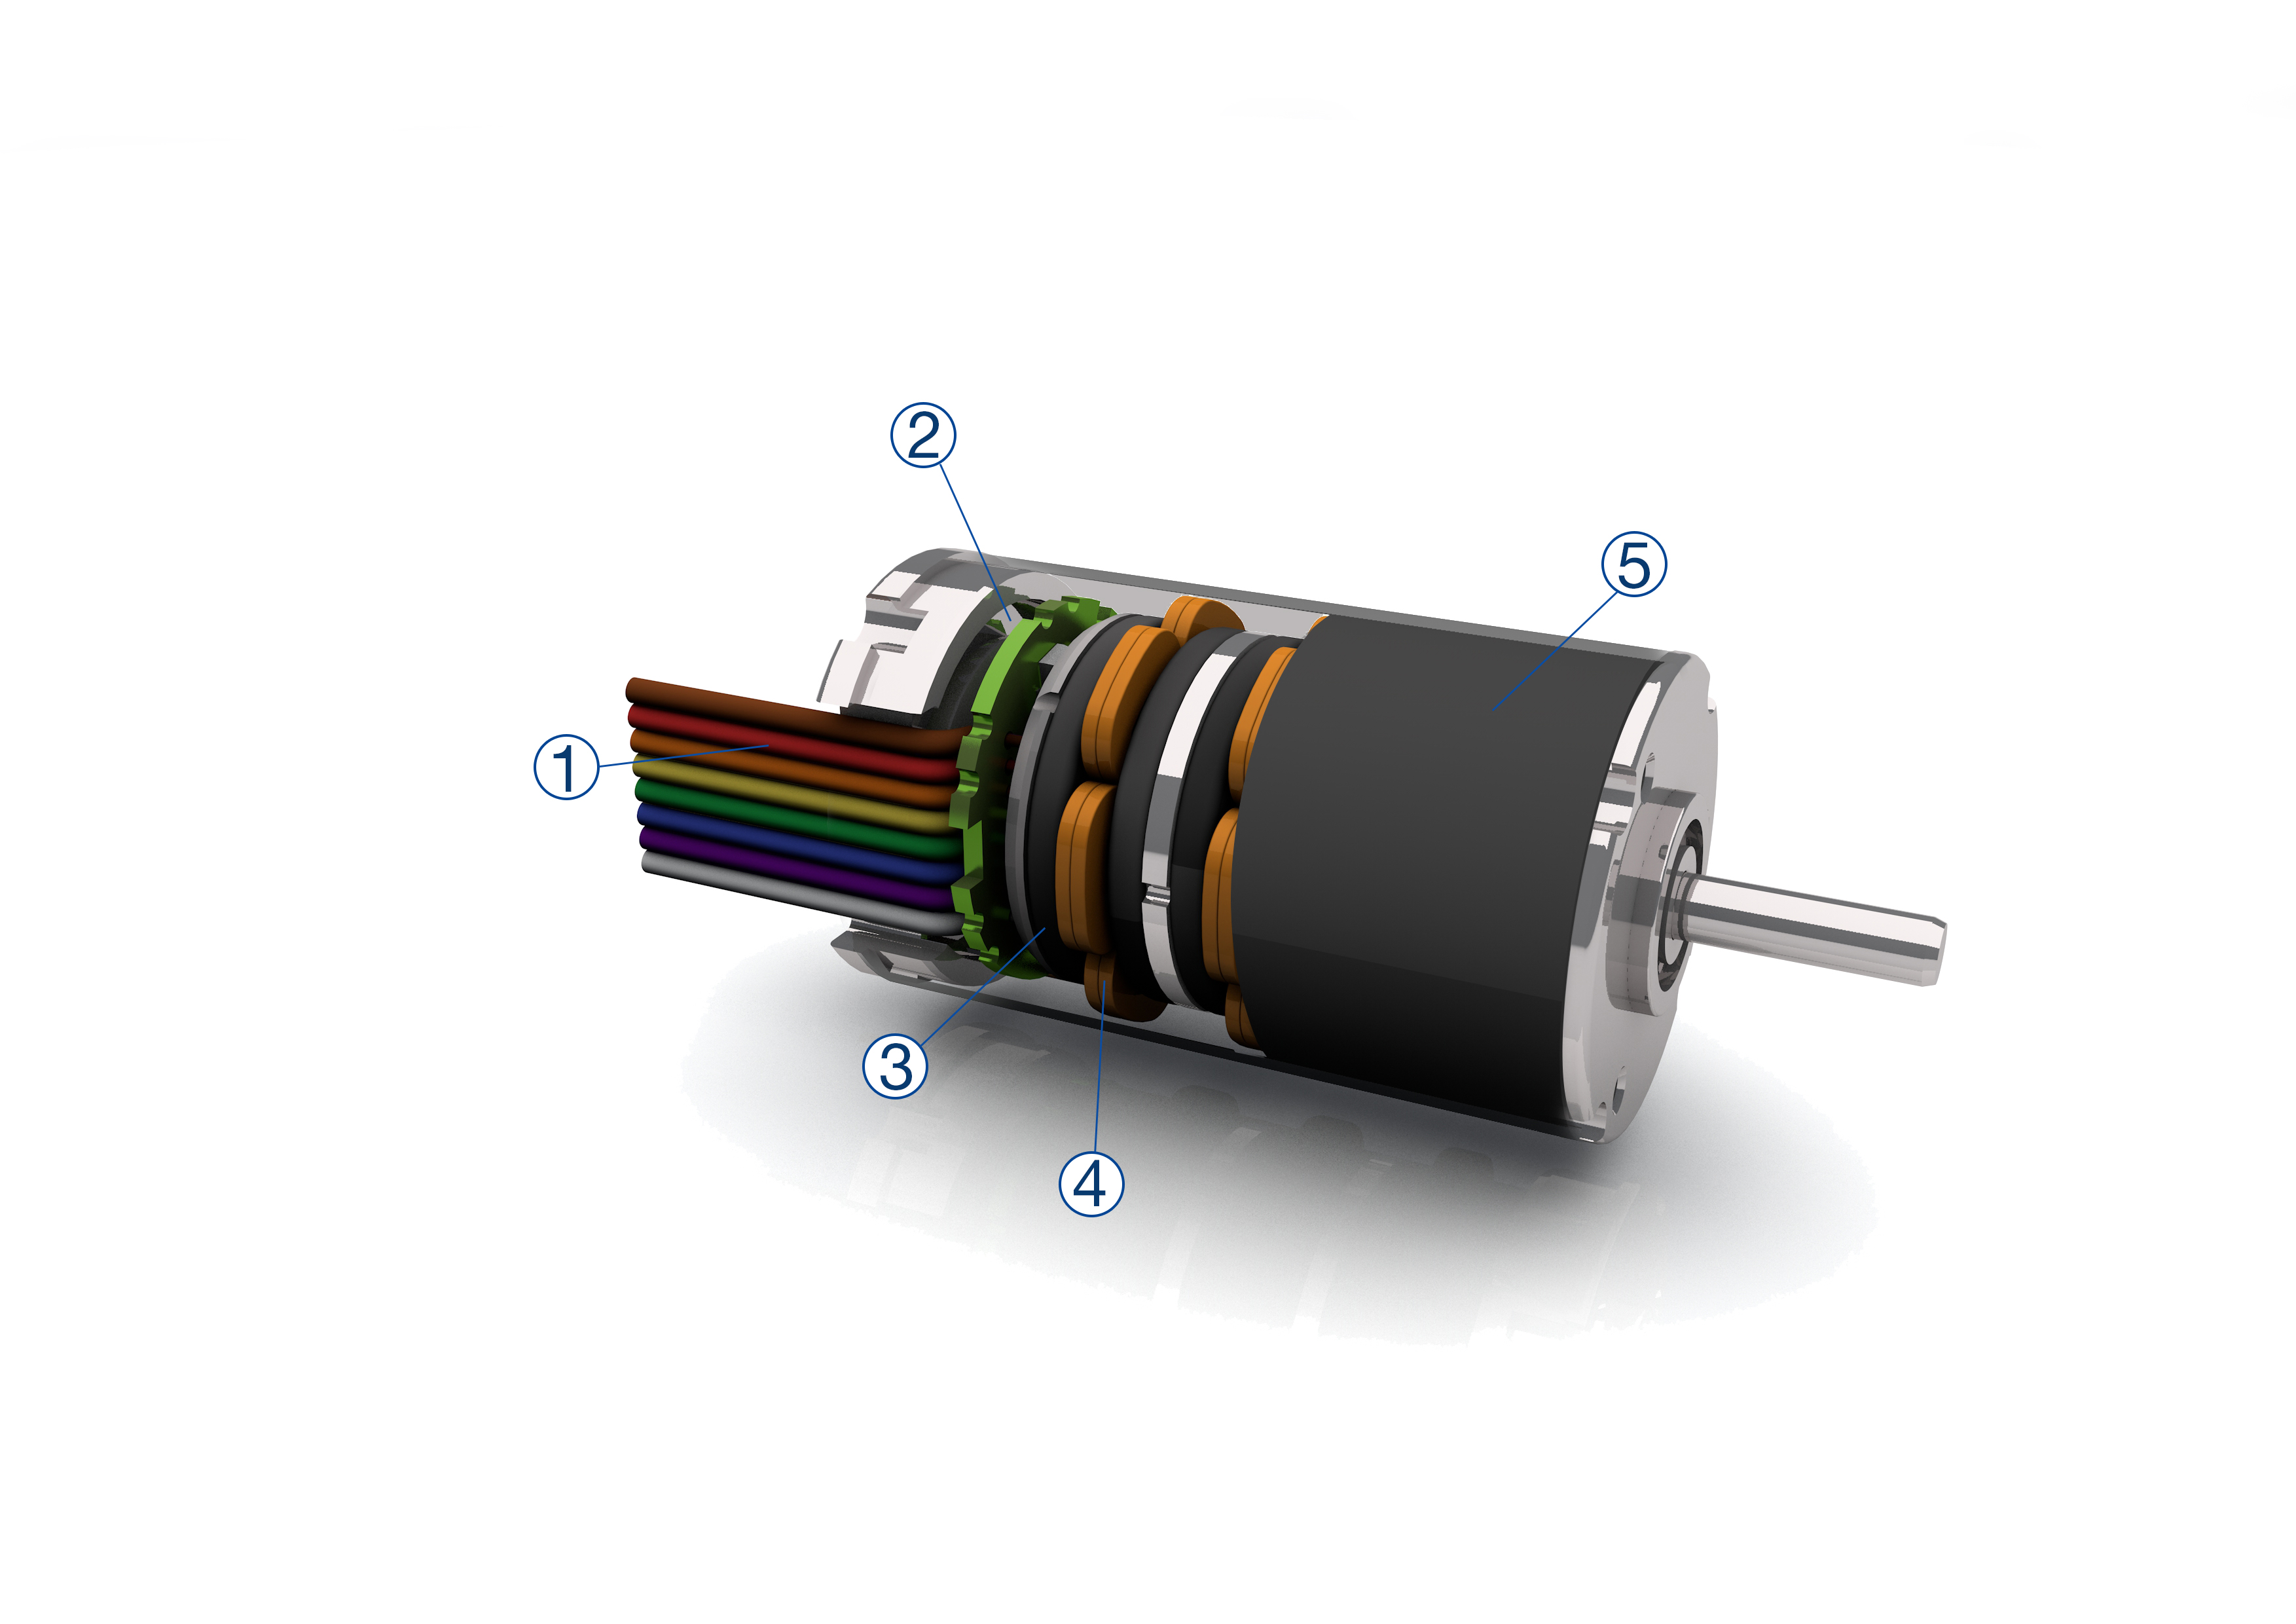 BLDC motor with axial flux principle convinces in small